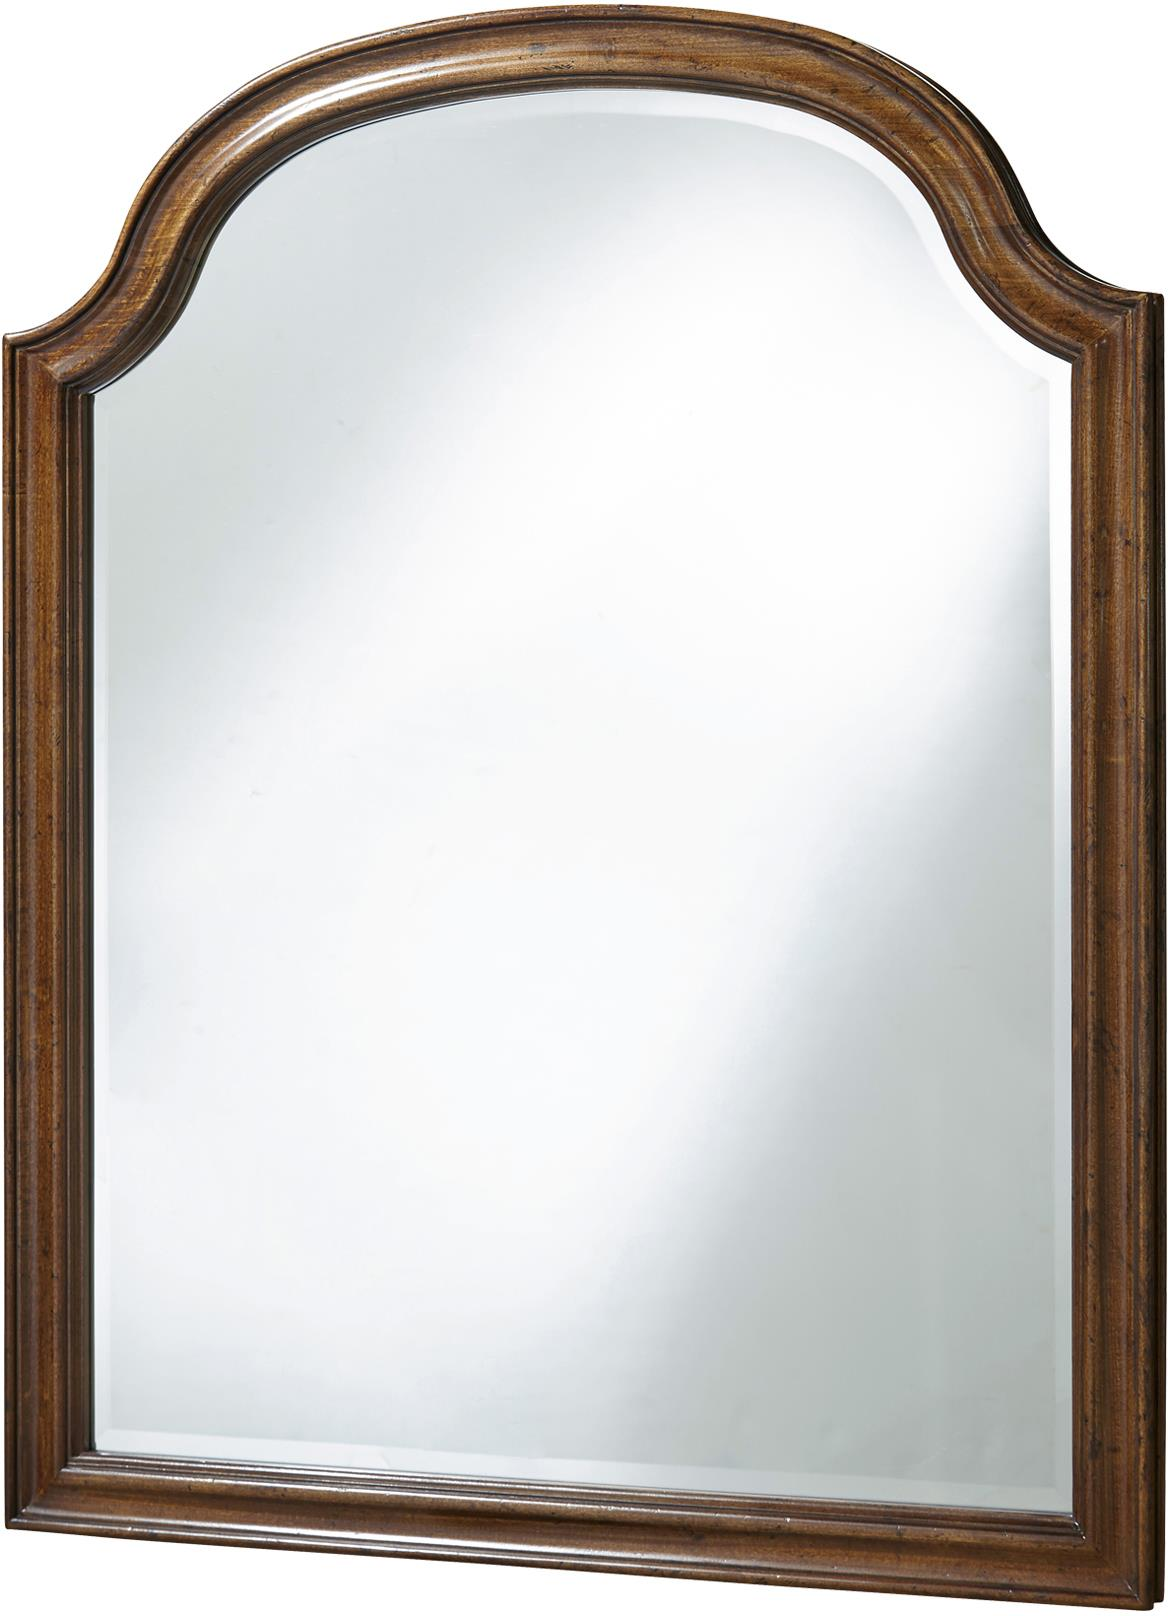 Paula Deen by Universal Dogwood Mirror - Item Number: 59604M